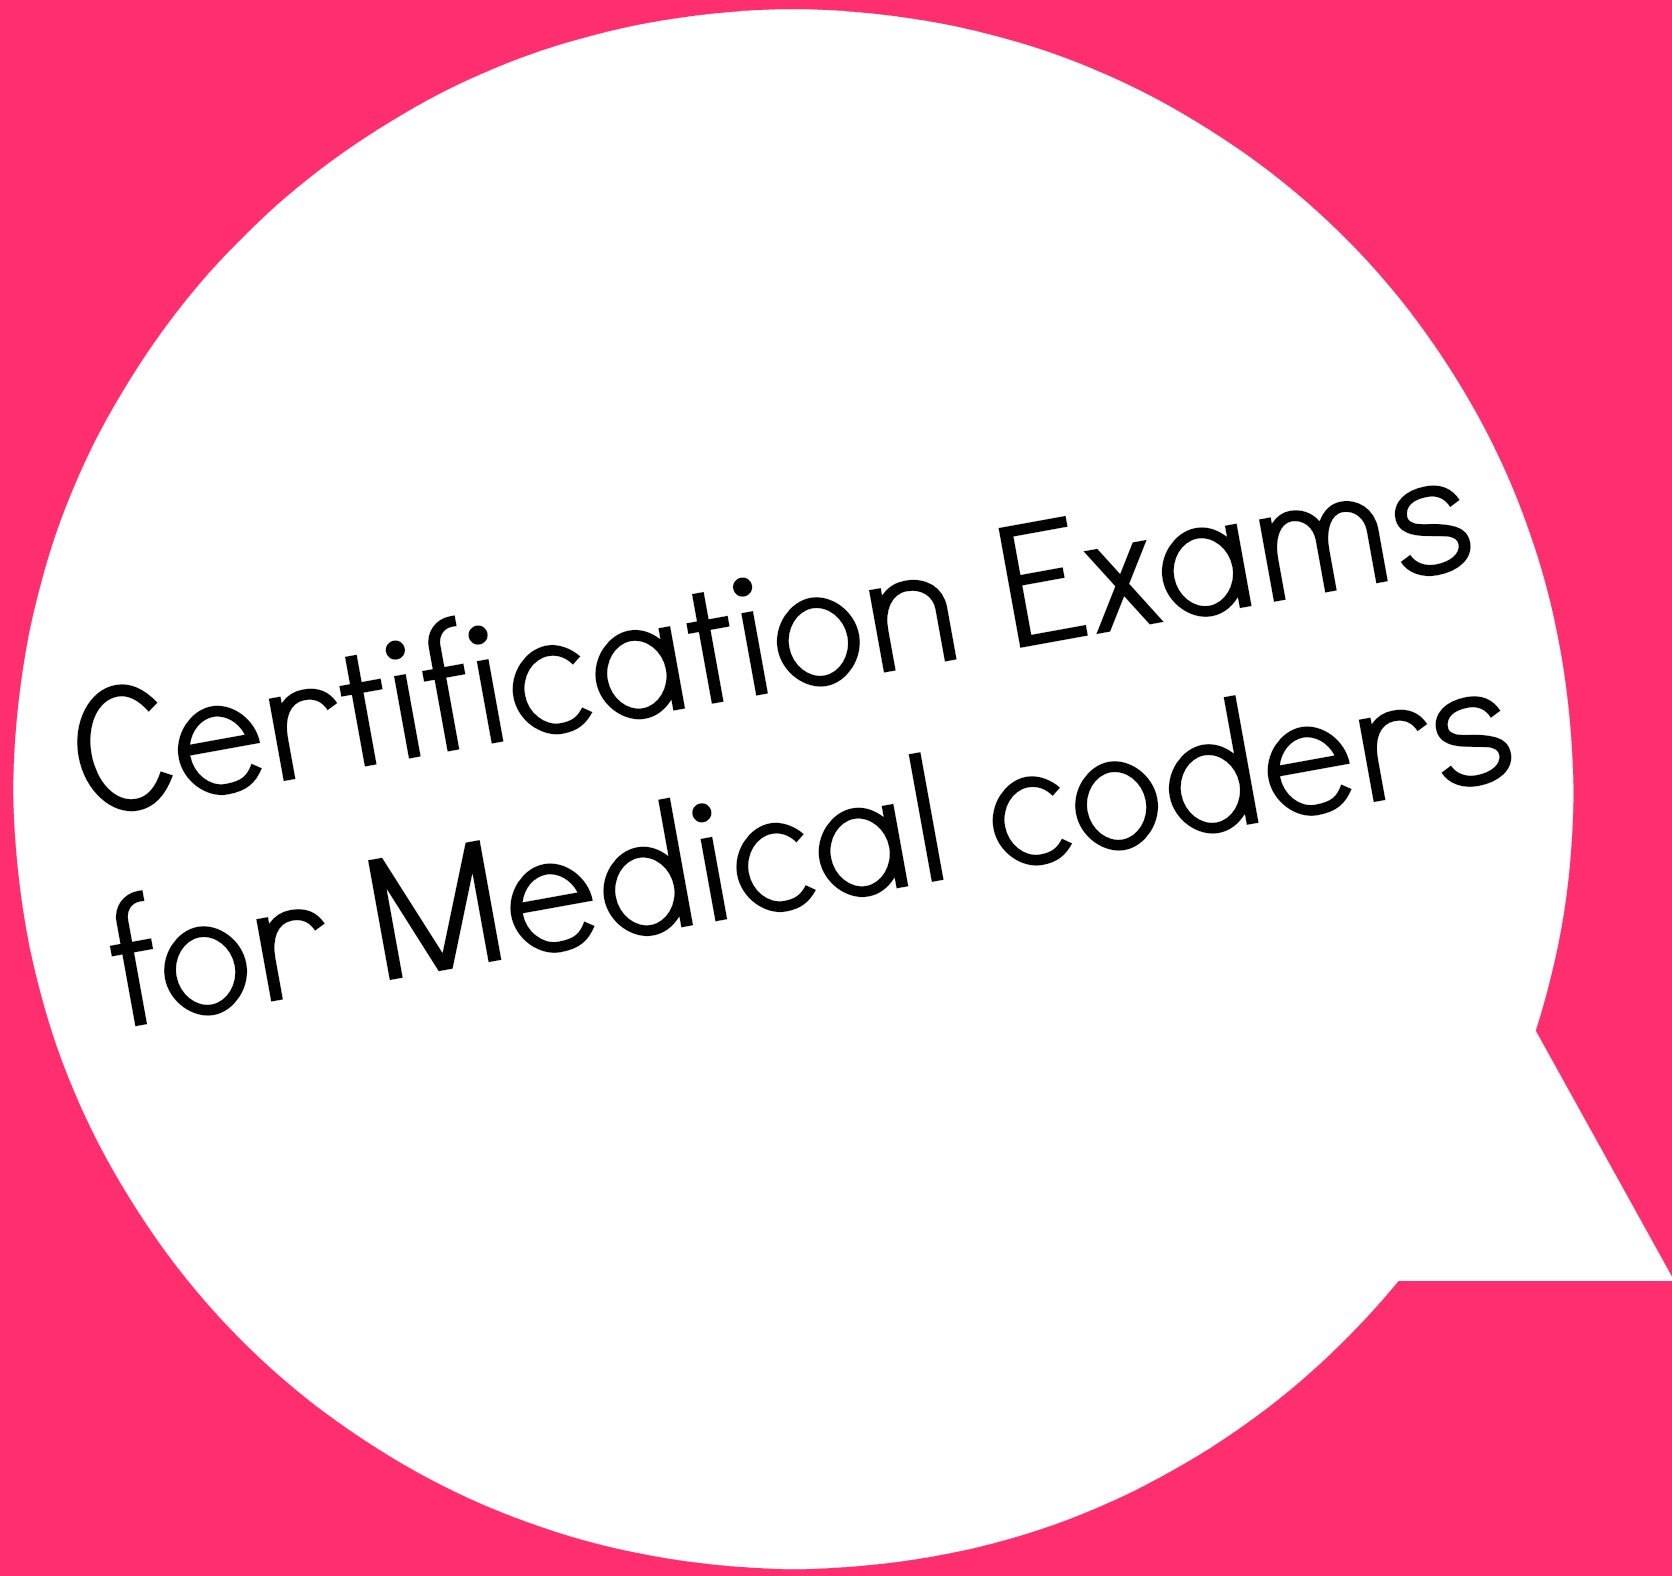 Basic certification exams to become certified professional coder basic certification exams to become certified professional coder medical coding guide 1betcityfo Gallery